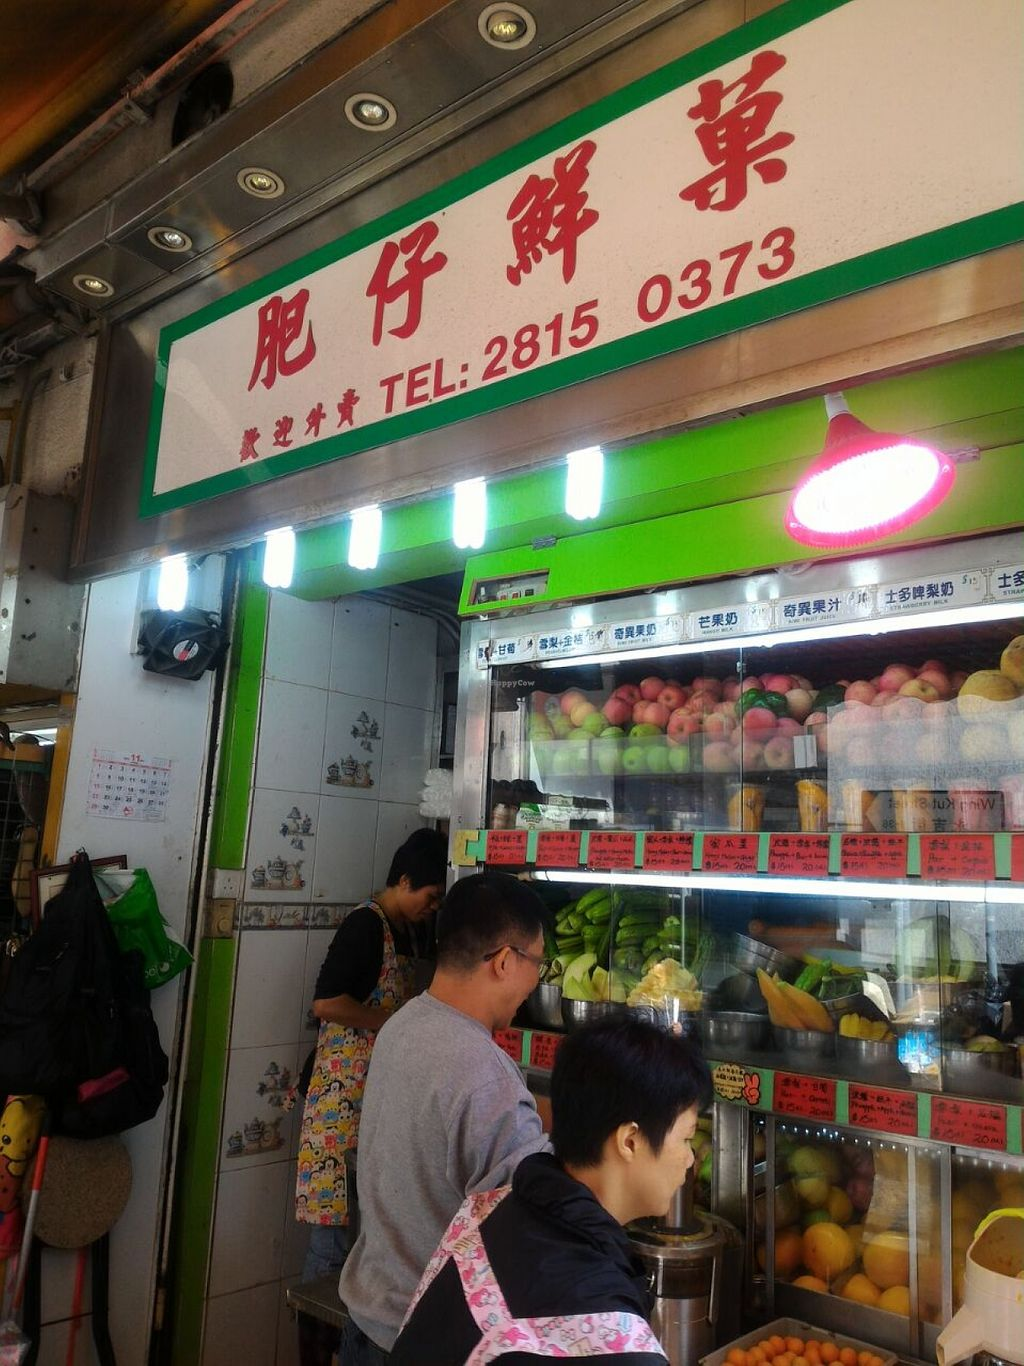 "Photo of Fei Chai Juice Stall  by <a href=""/members/profile/ouikouik"">ouikouik</a> <br/>fei chai juice stall <br/> November 28, 2015  - <a href='/contact/abuse/image/66393/126469'>Report</a>"